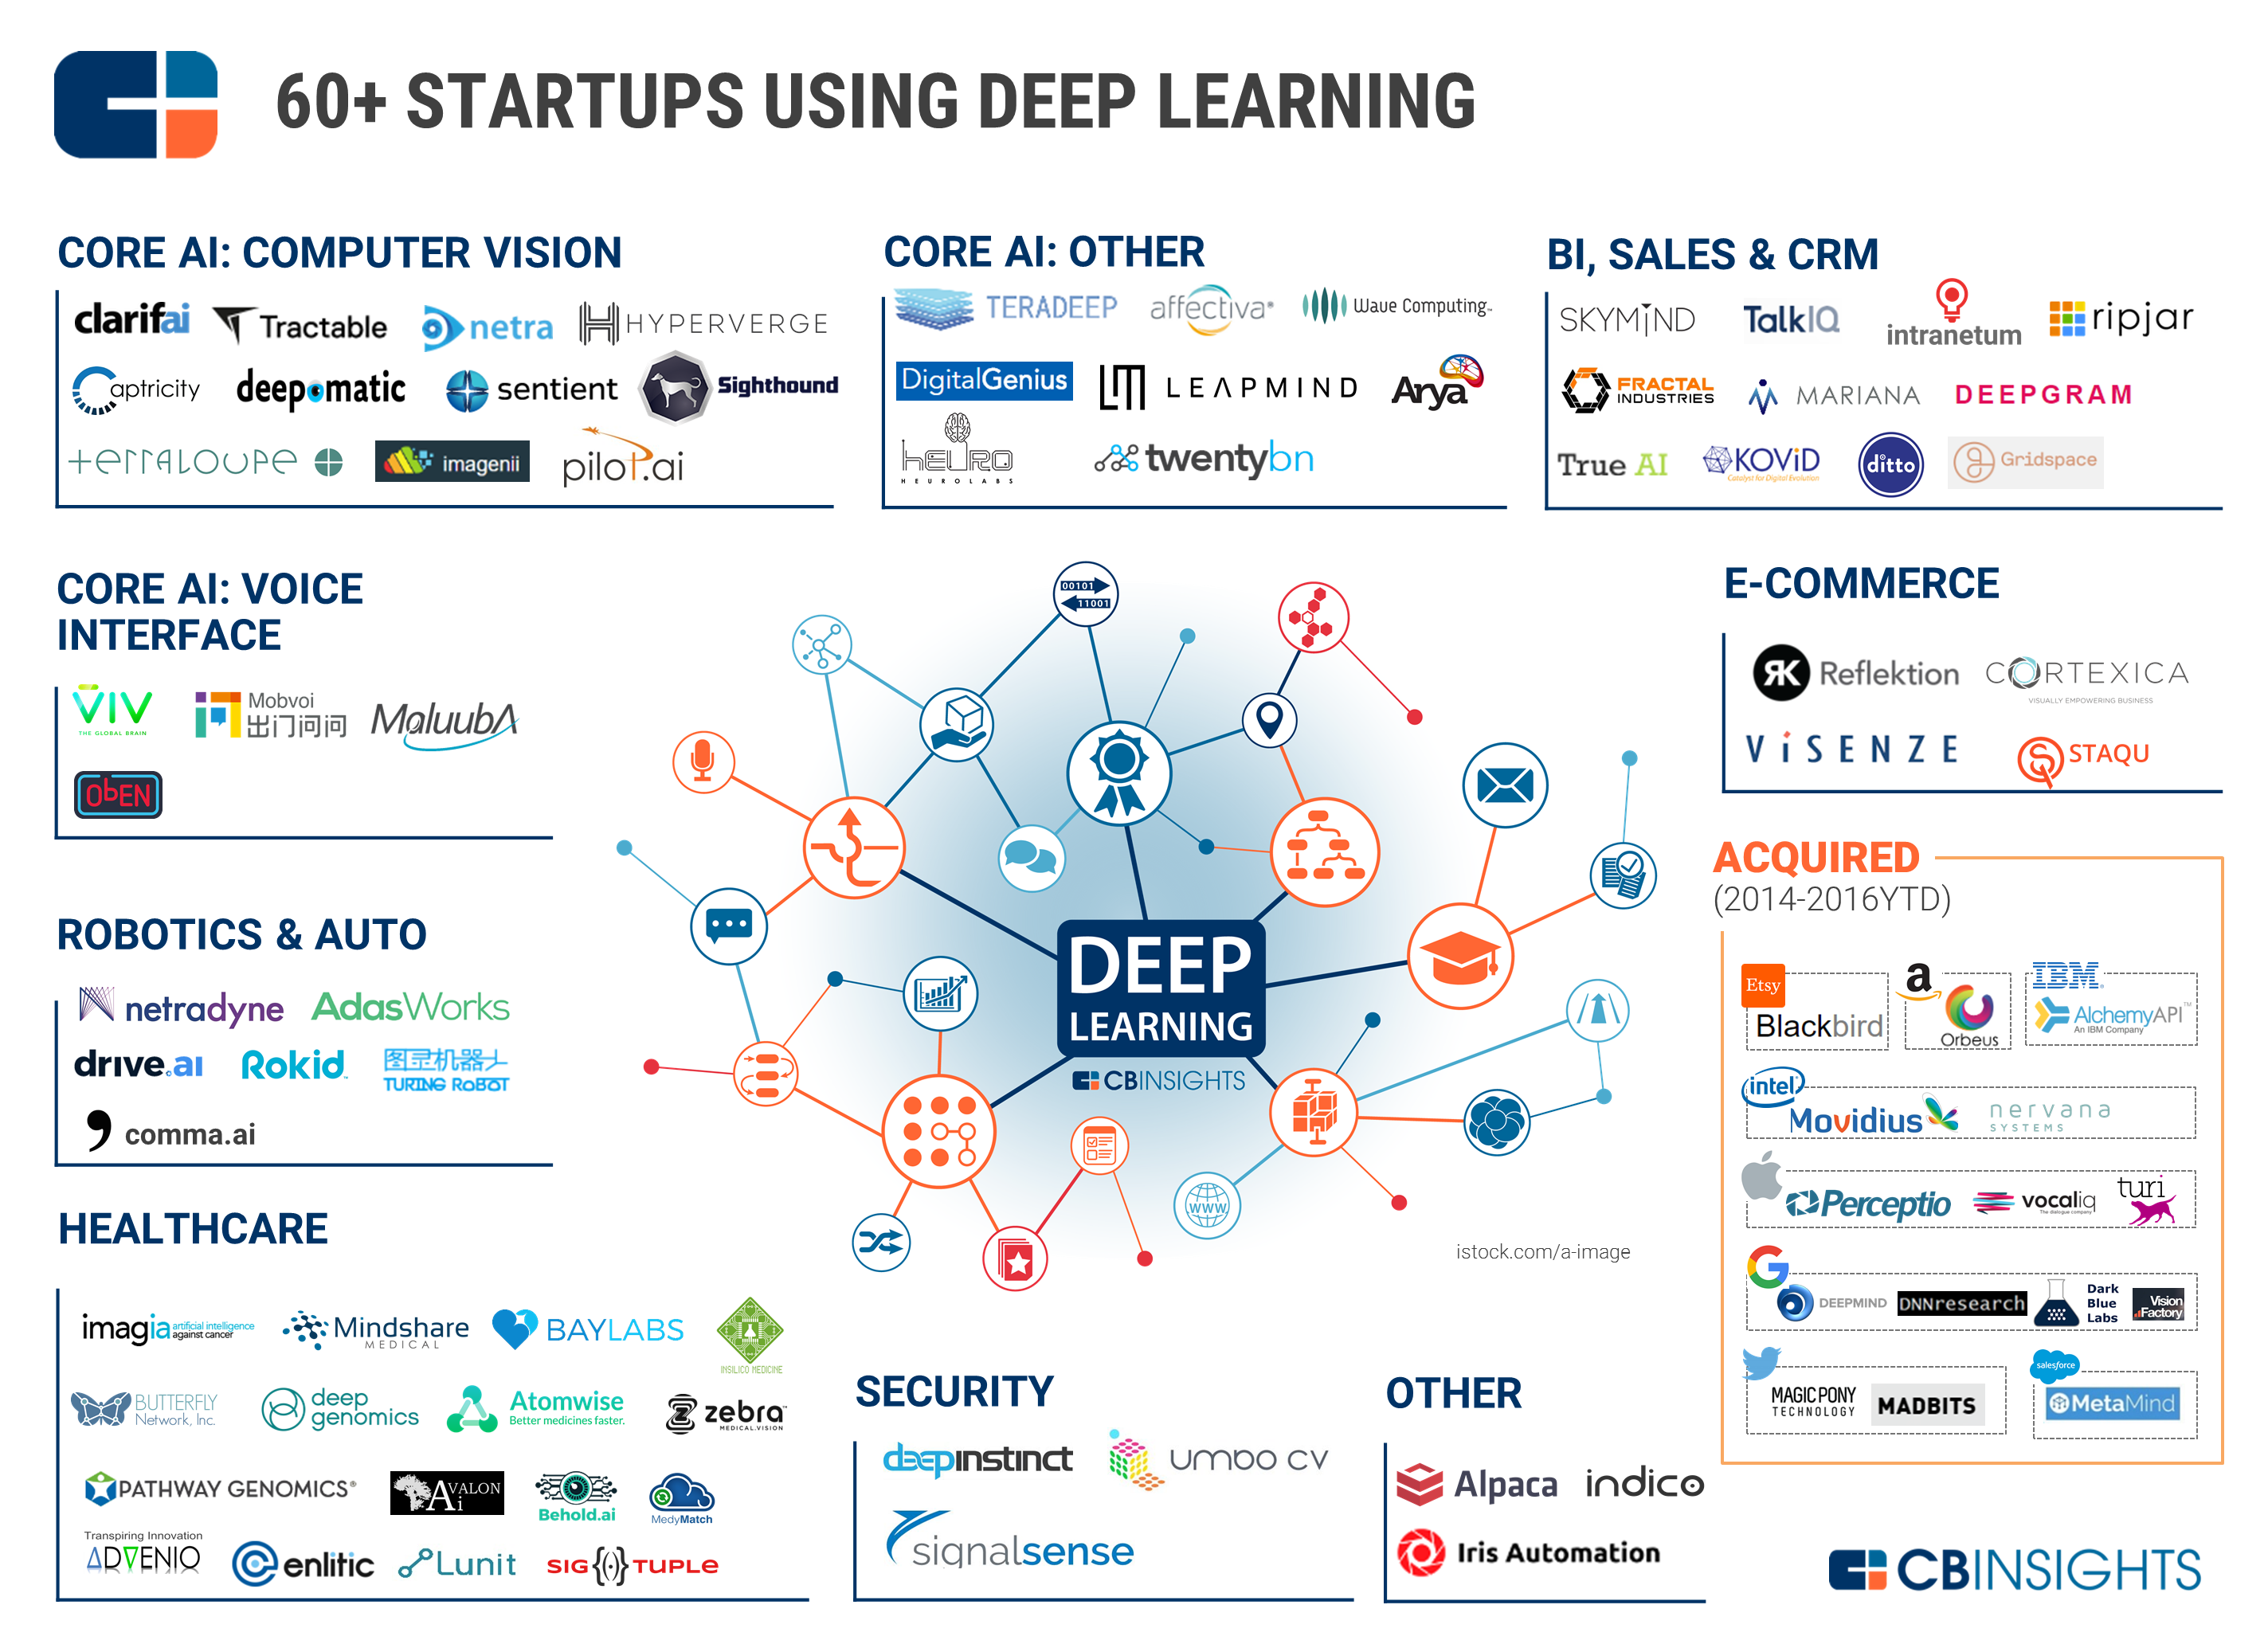 60+ Artificial Intelligence Startups Using Deep Learning